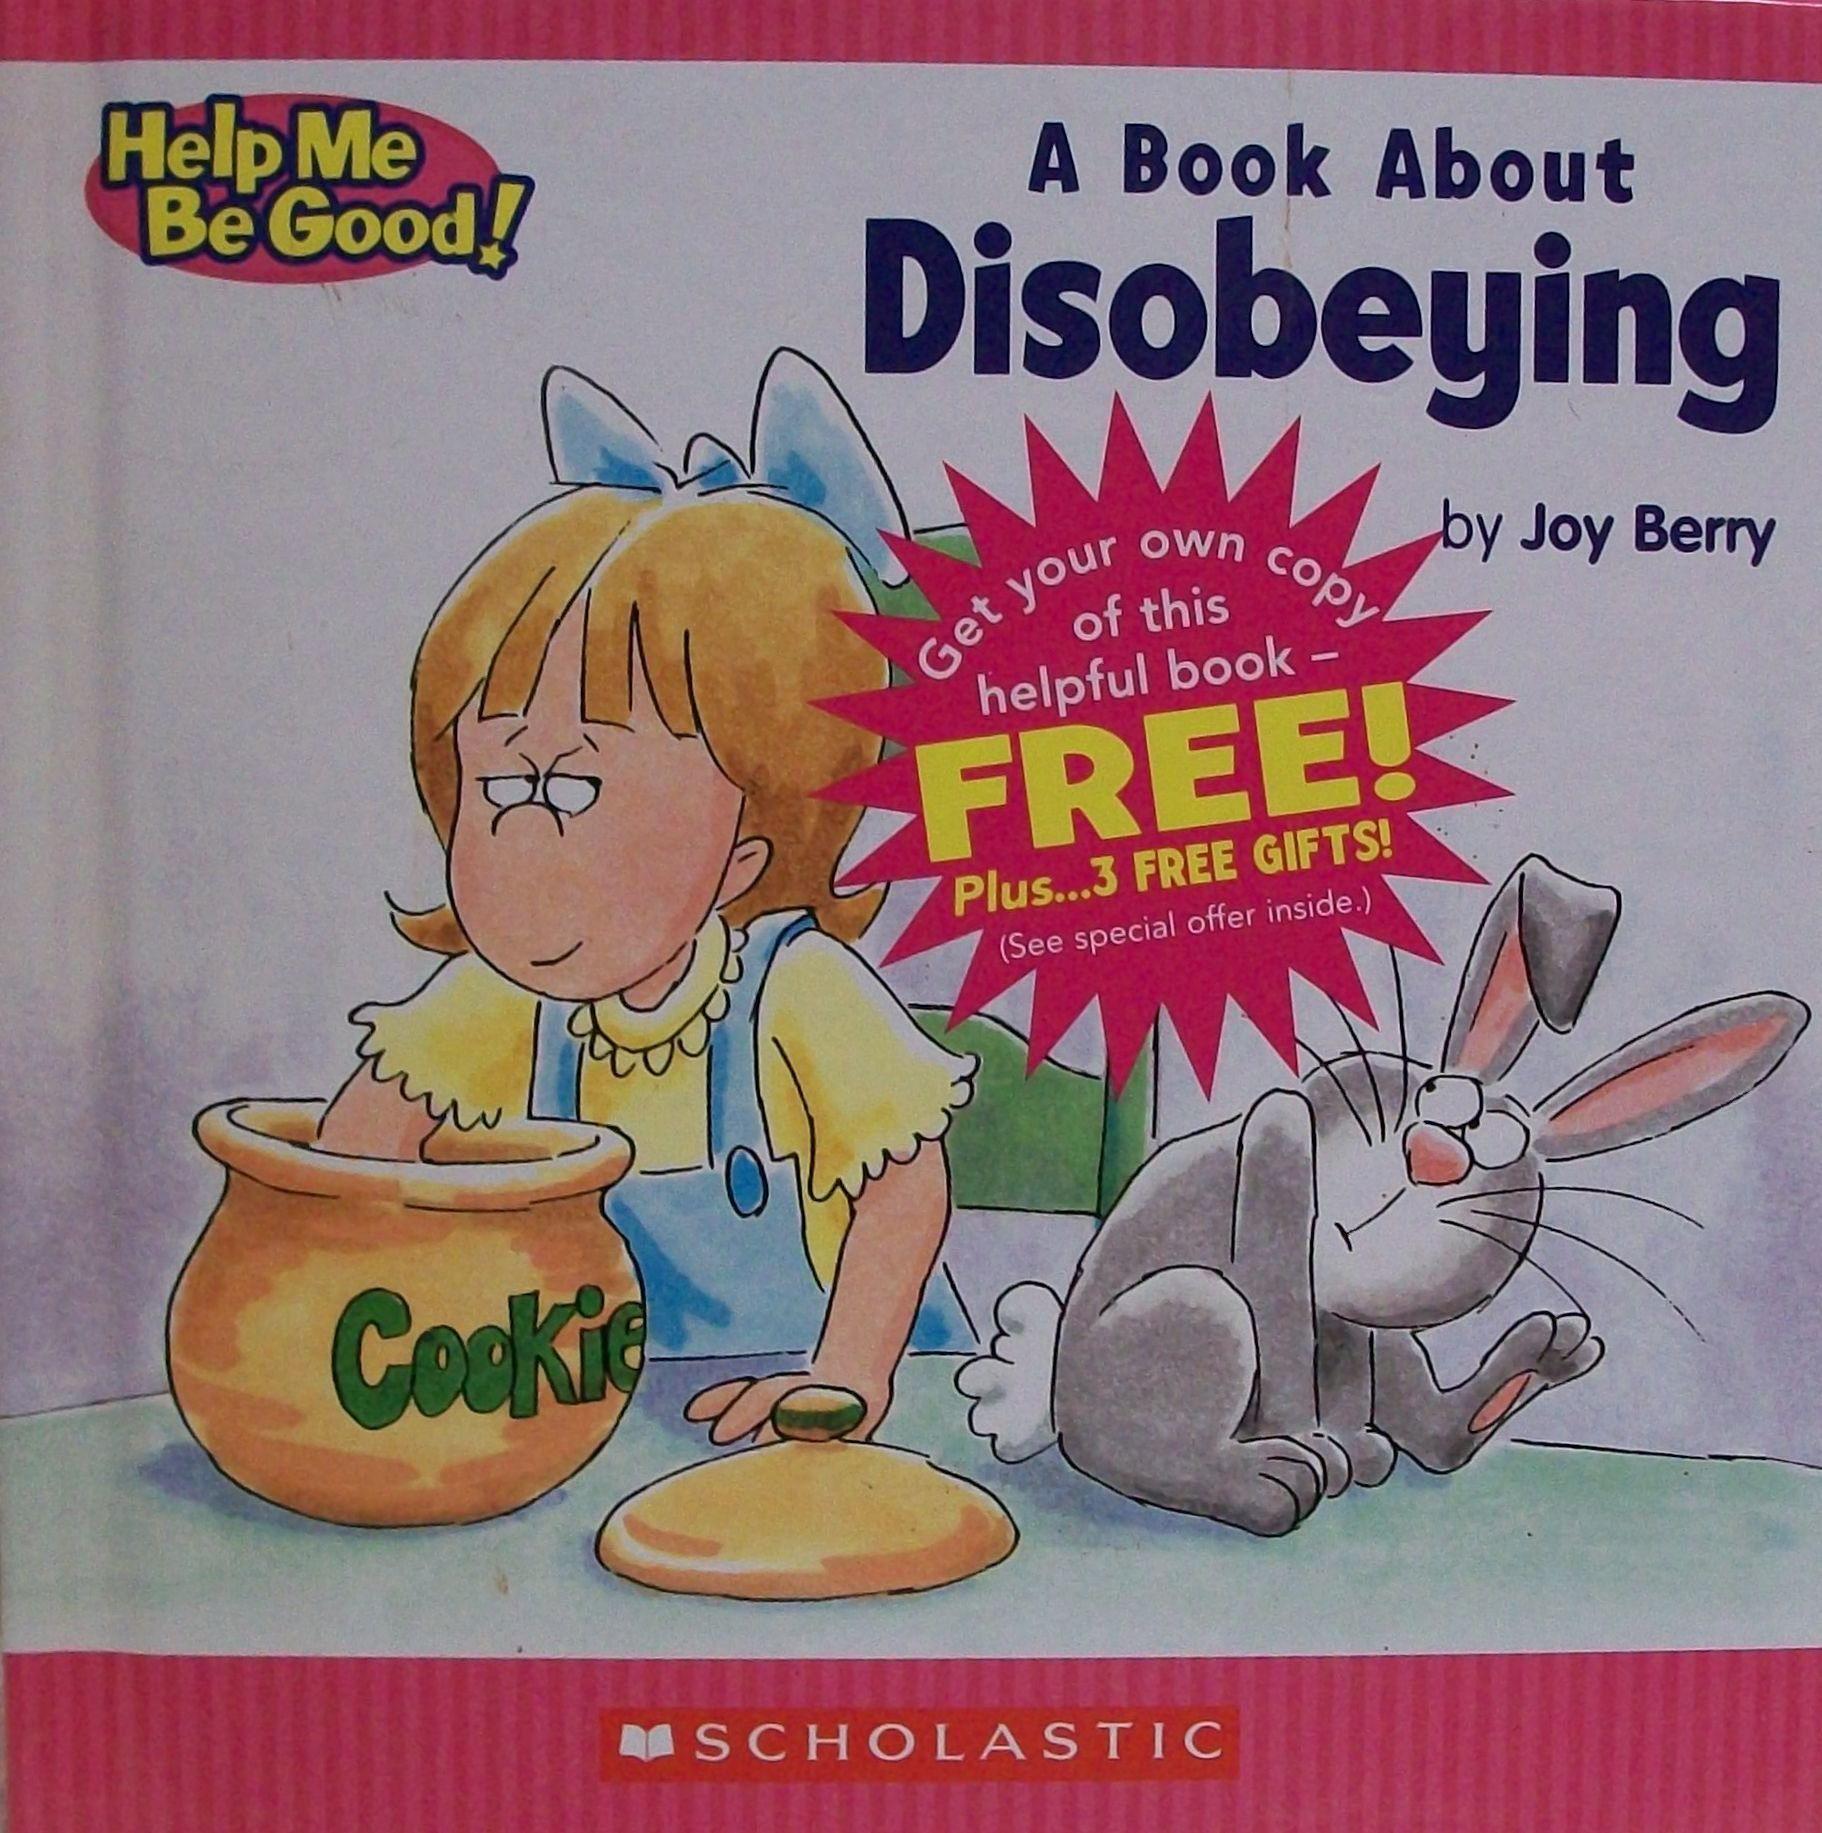 A Children's Book About Disobeying by Joy Berry